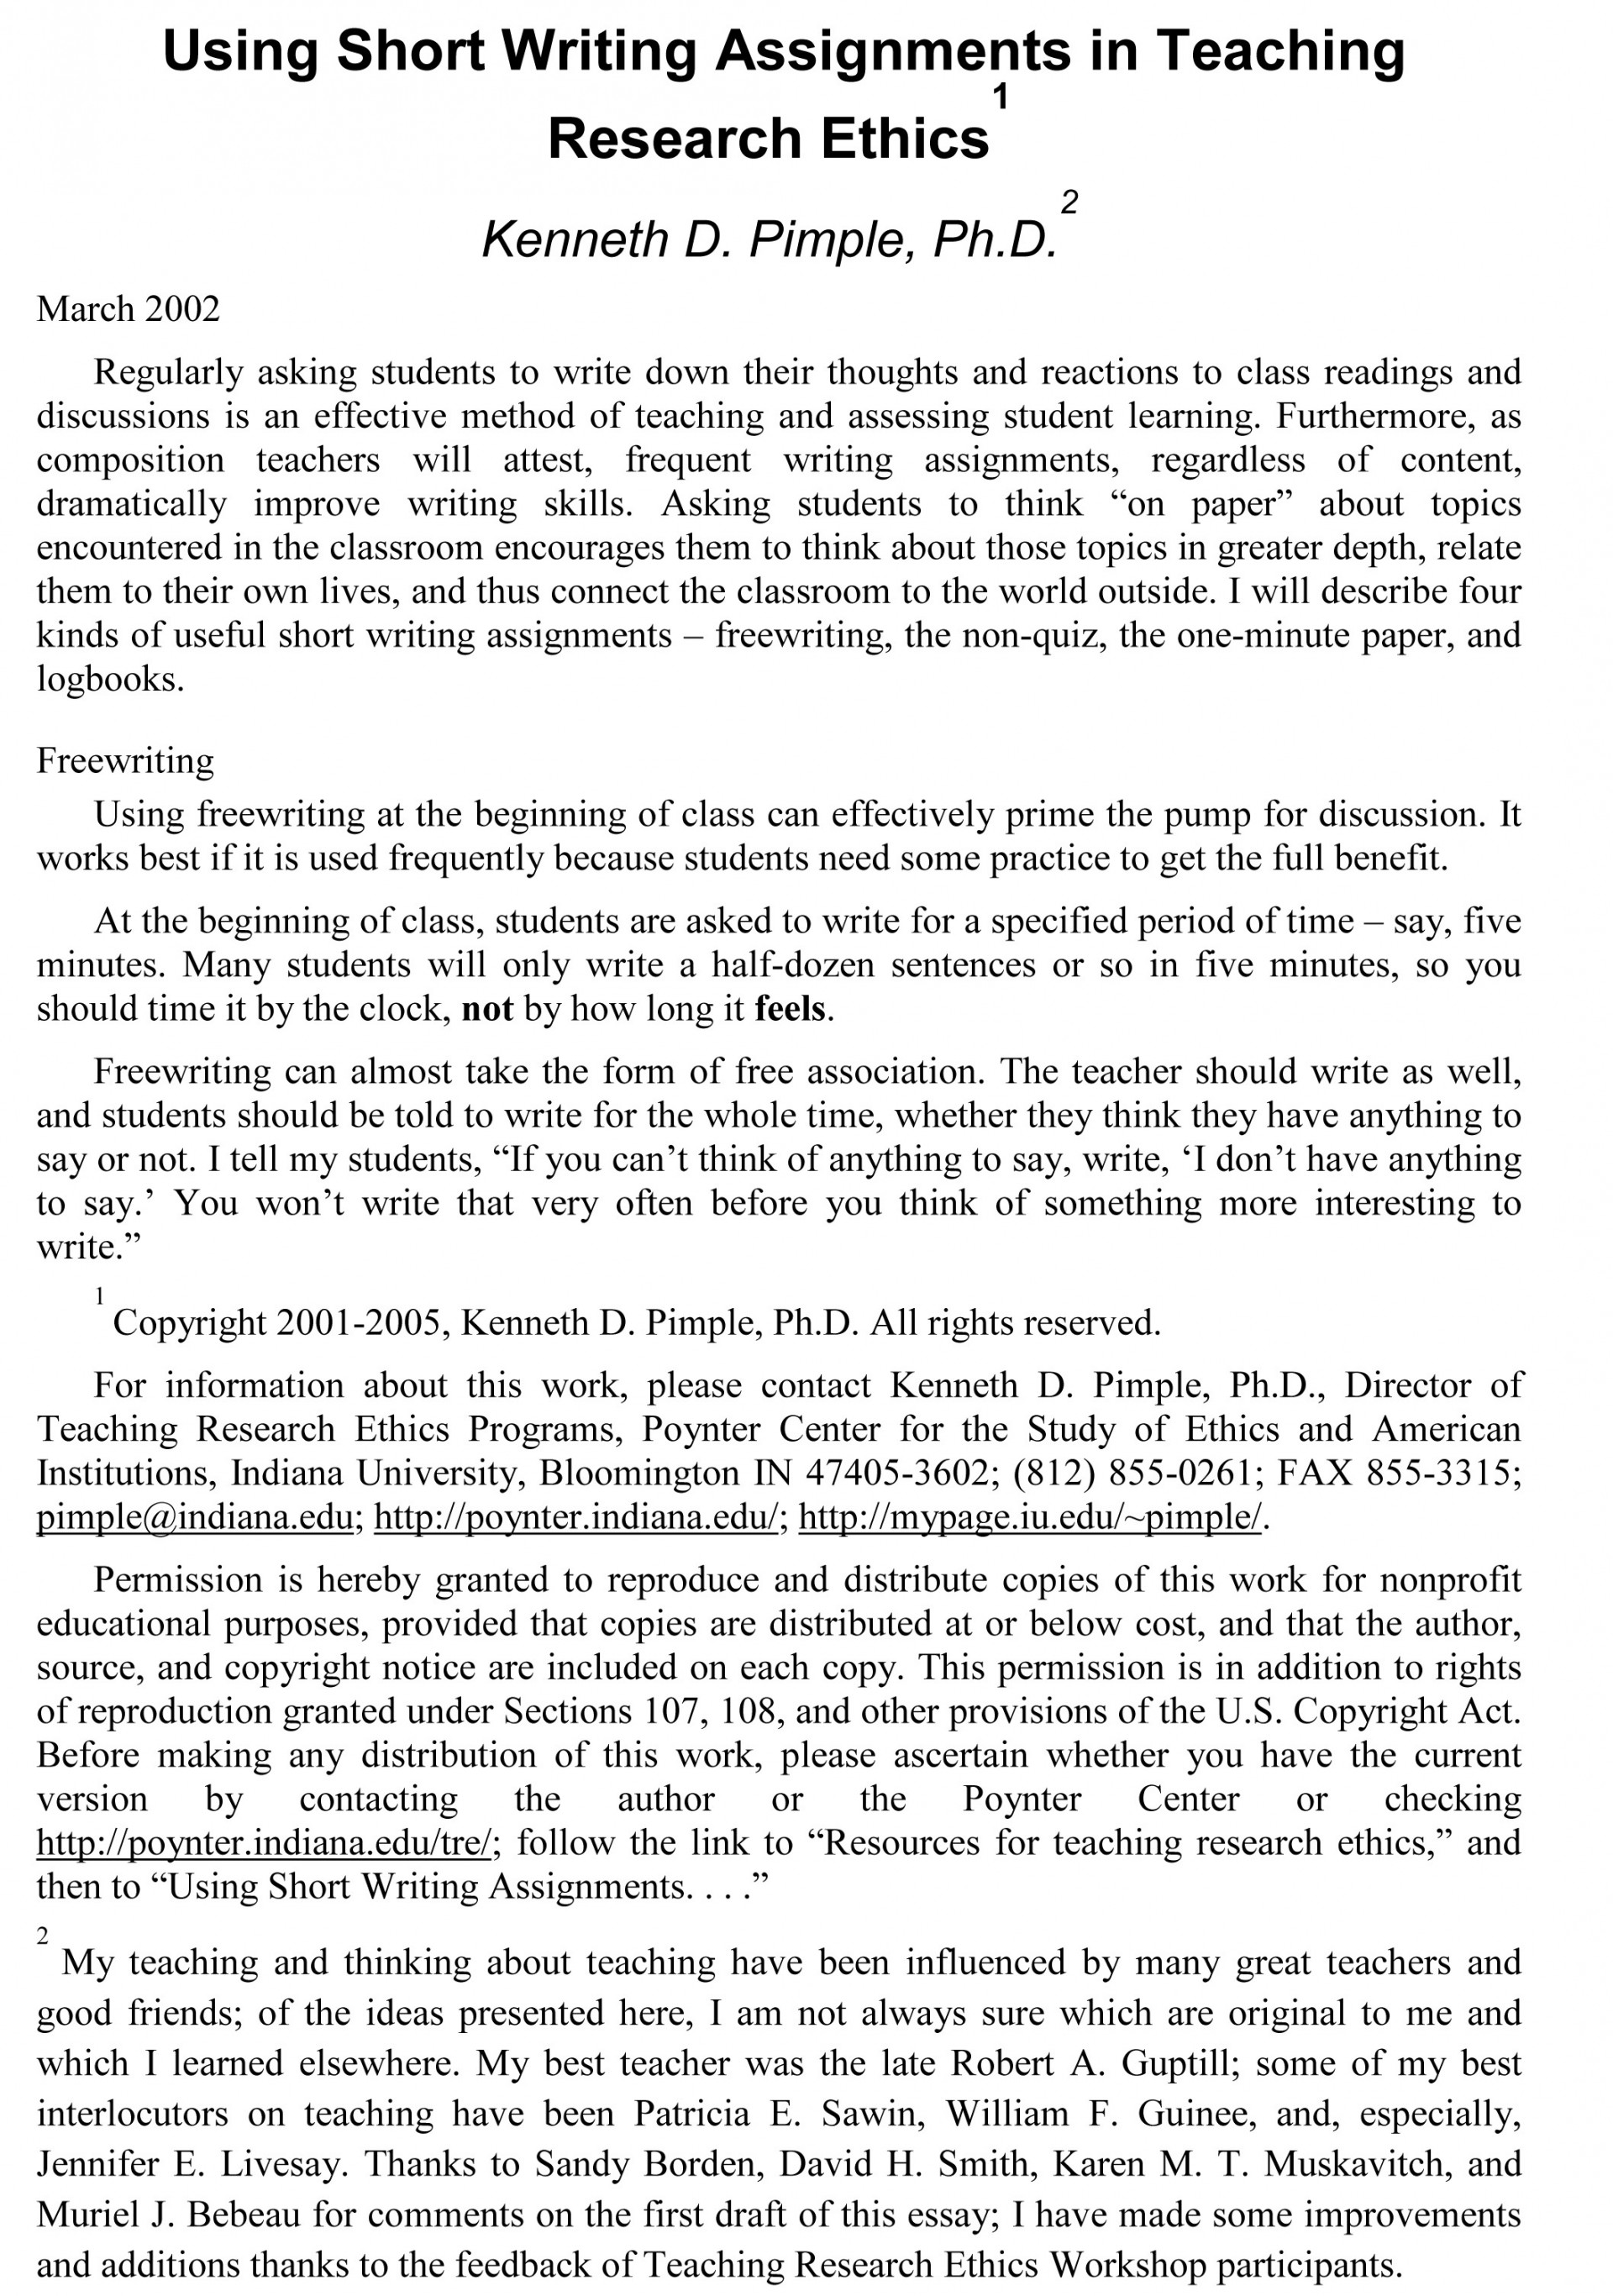 017 Good Personal Research Essay Topics Www Omoalata Pertaining To Persuasives College Level Surprising Common App For Students Narrative 1920